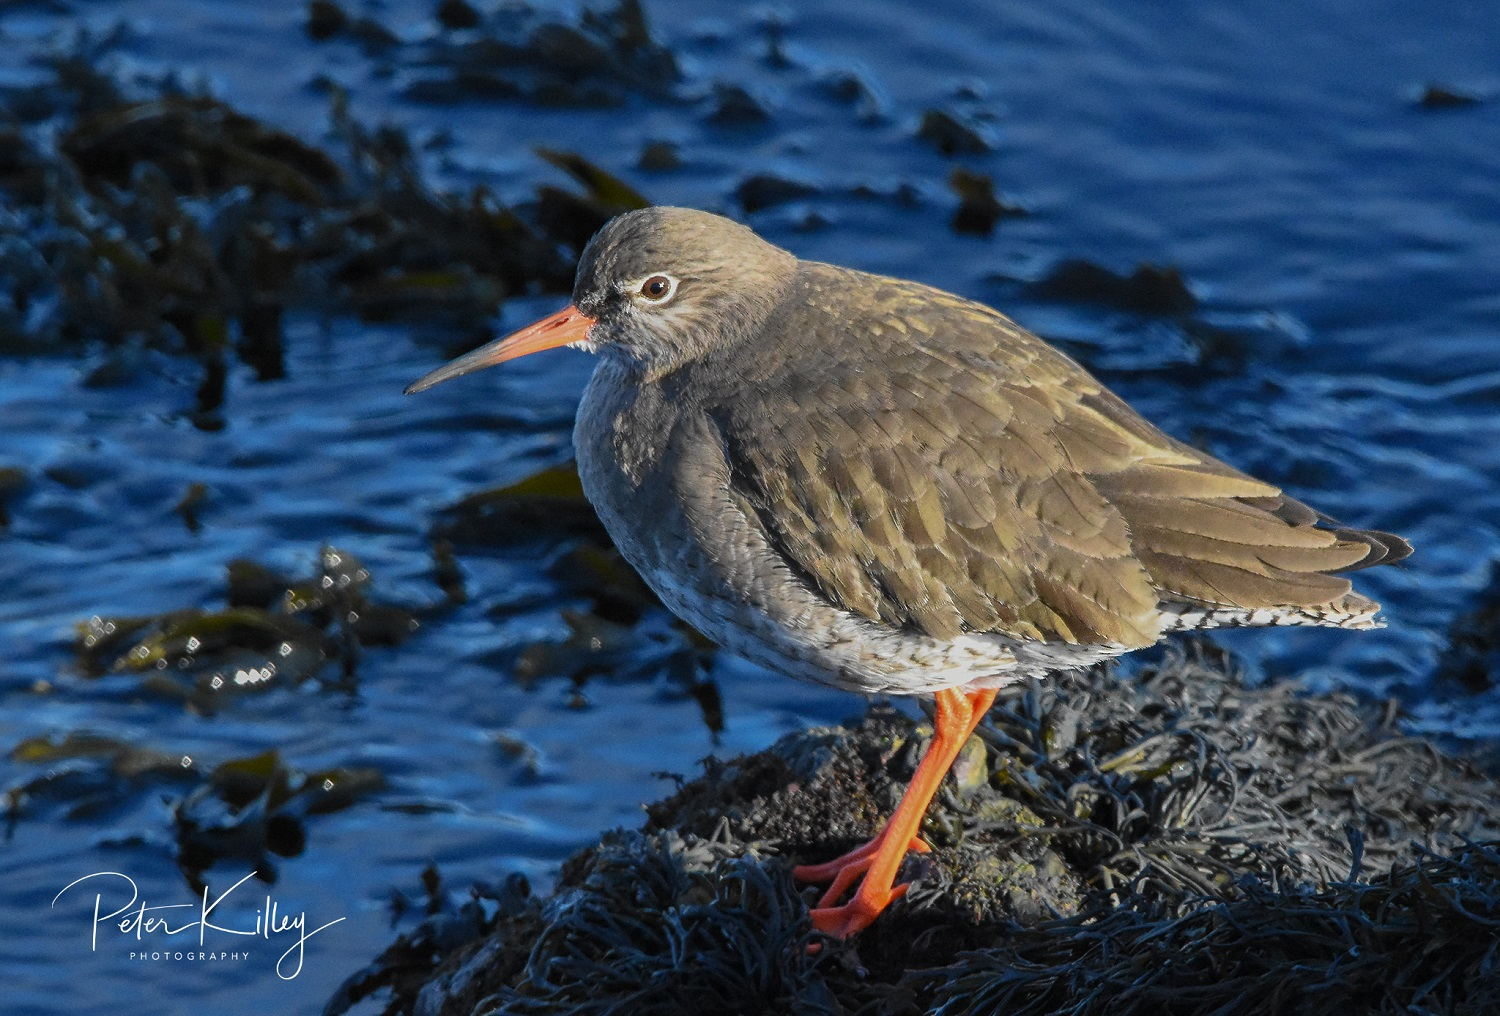 Redshank (Peter Killey)